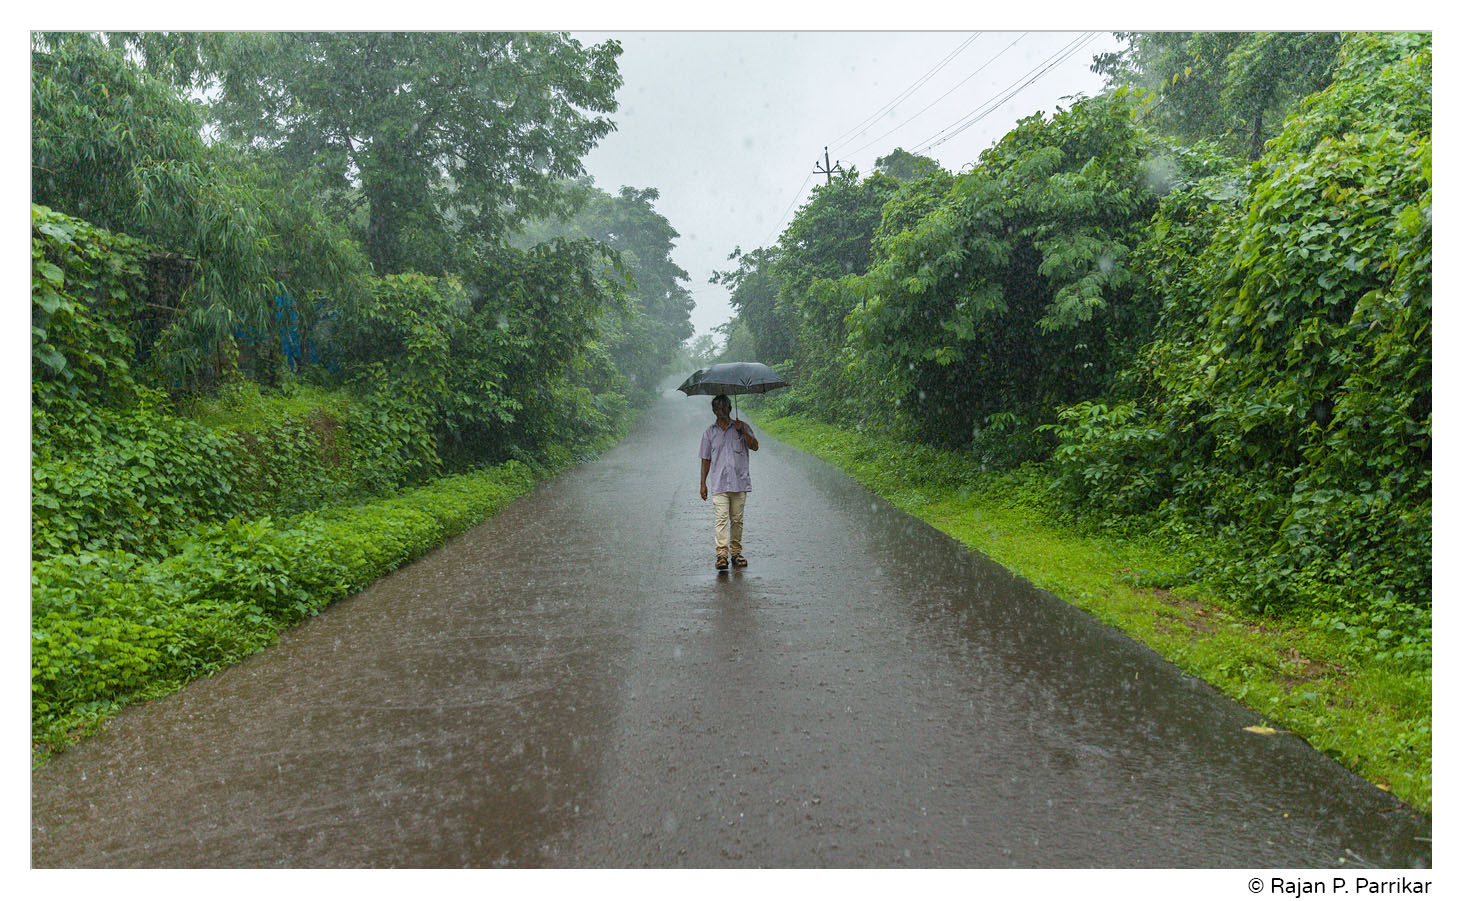 Heavy rain in Savoi-Verem, Goa